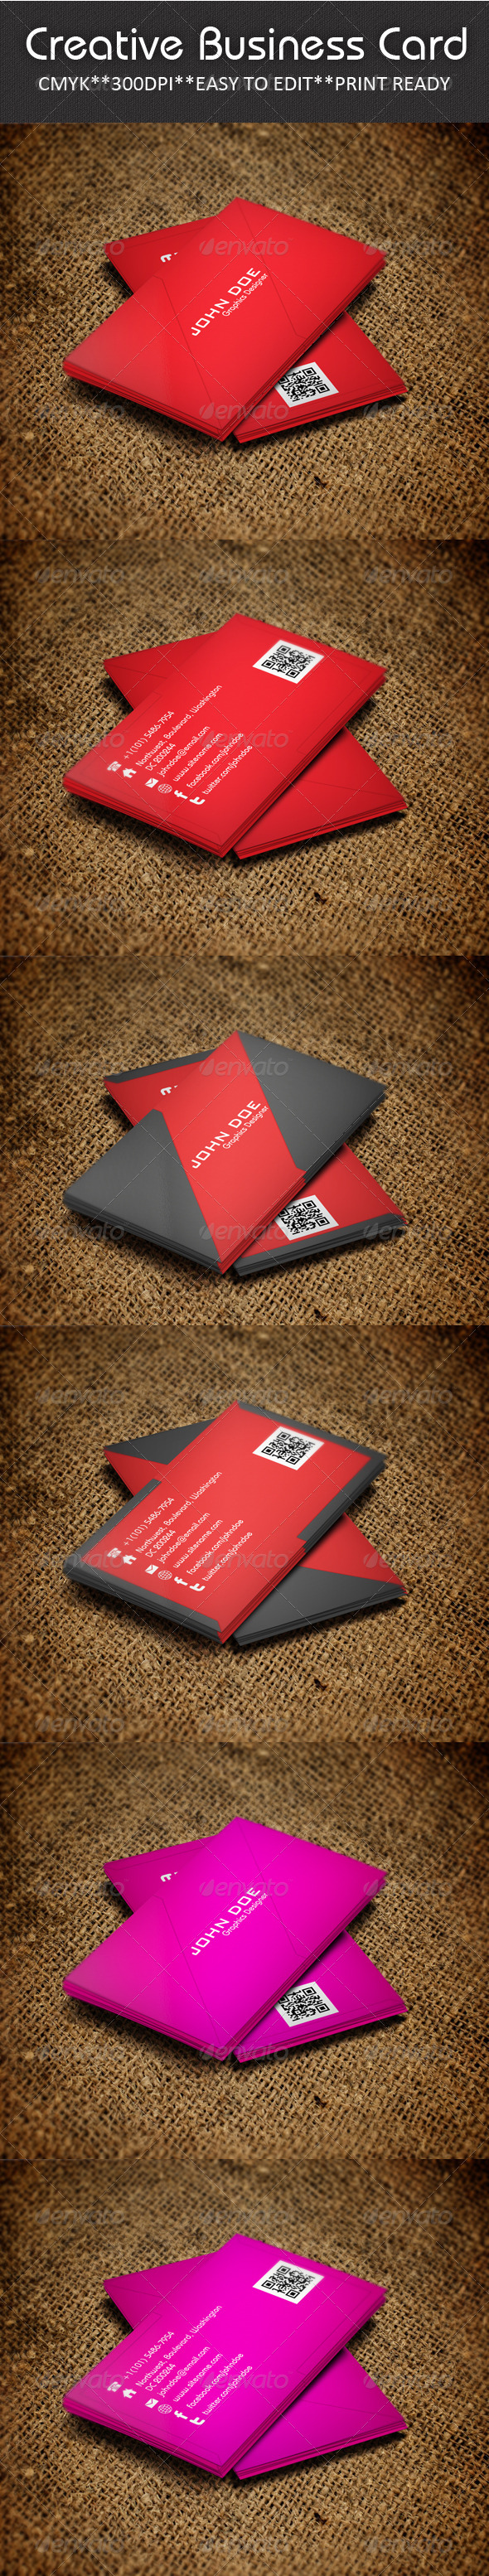 GraphicRiver Creative Business Card 5217752